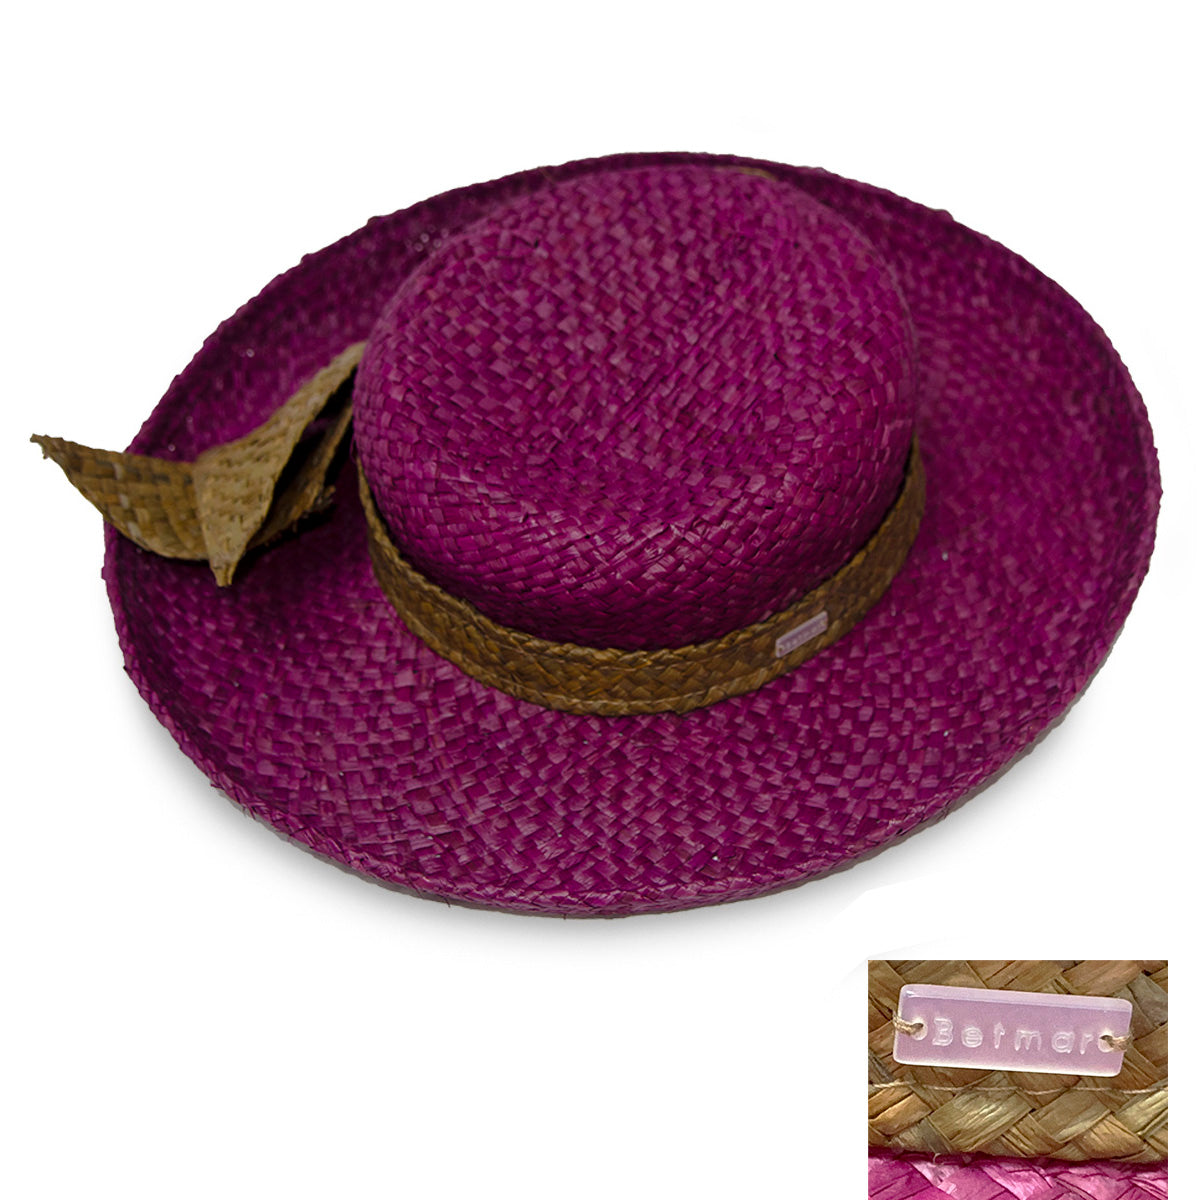 Vintage Betmar Purple Straw Wide Brim Sun Hat 2